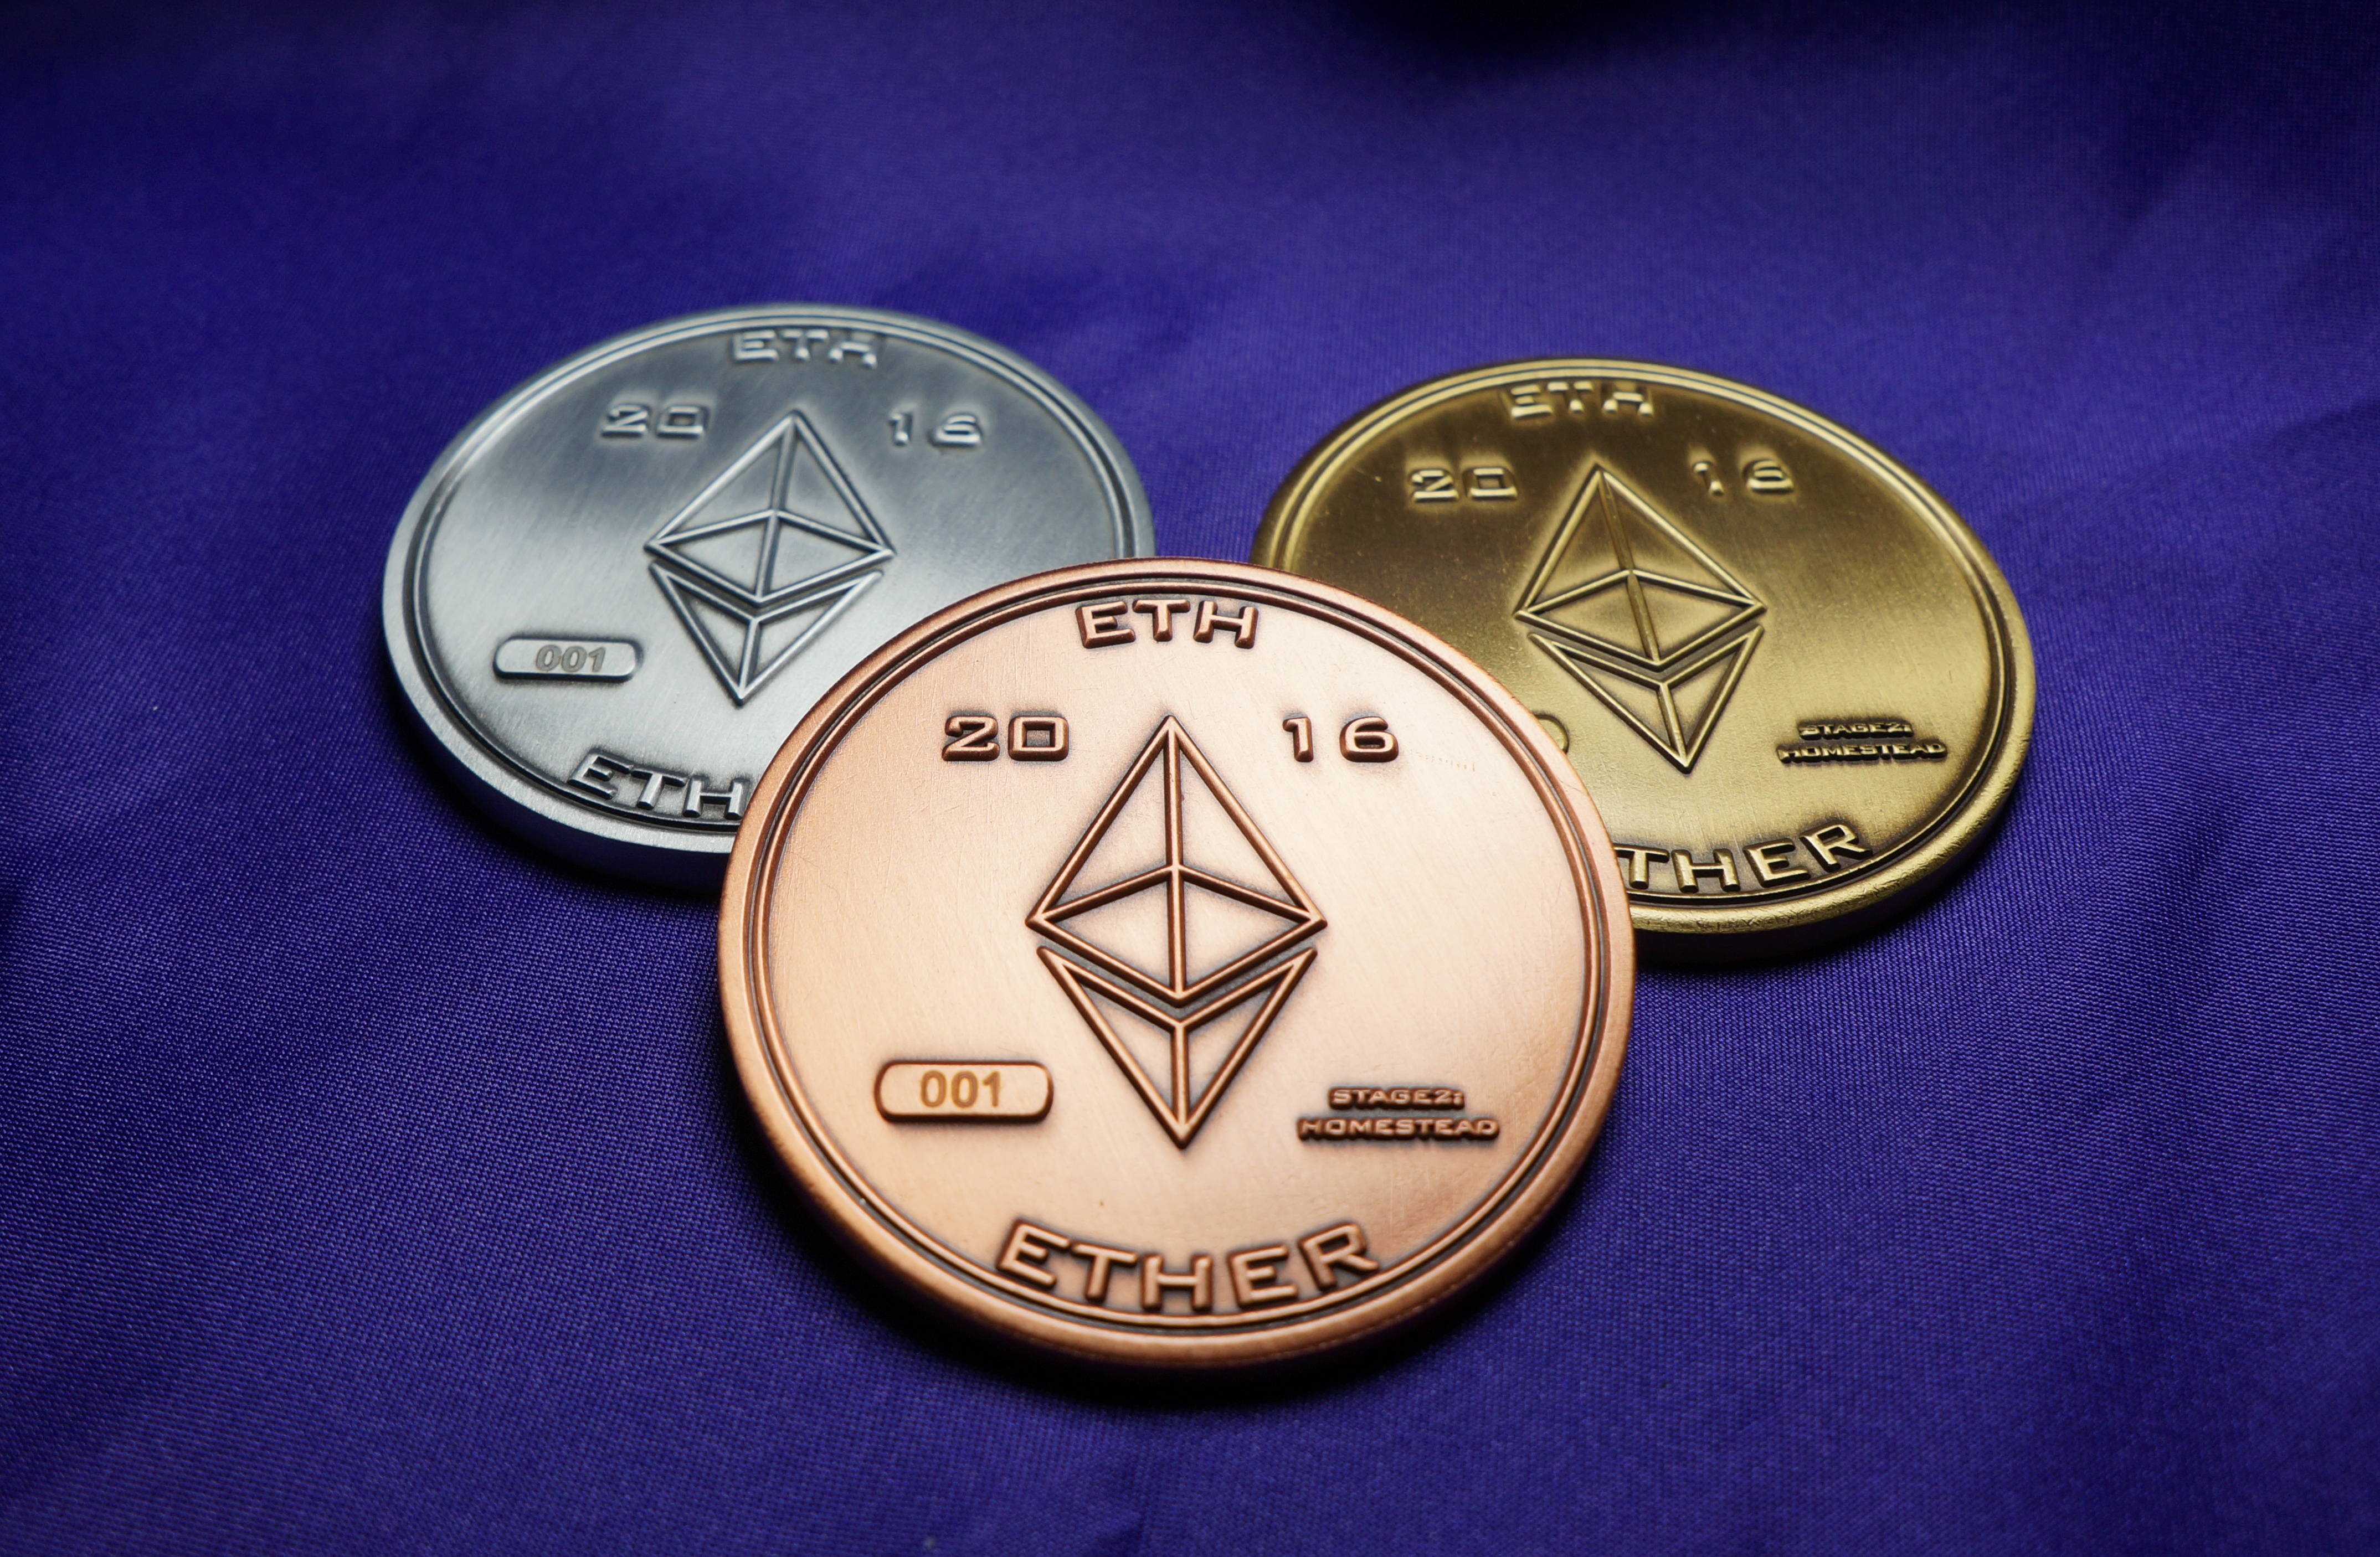 3 Pack Of 2 Ethereum Homestead Ether Coins 1 Of Each